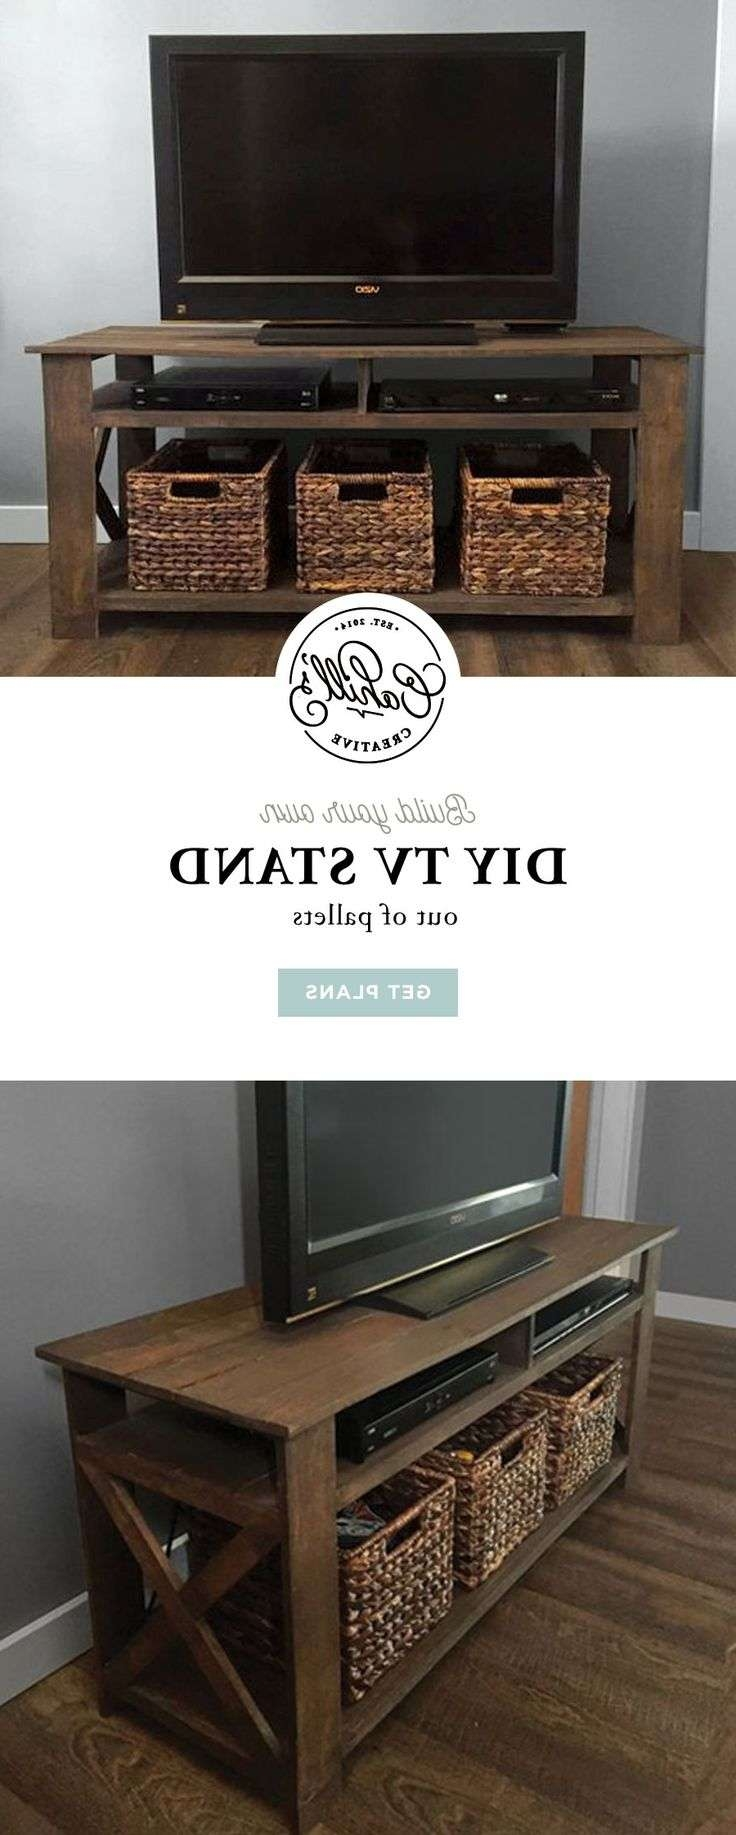 Tv : Tv Stand Decor Awesome Como Tv Stands Best 20 Tv Stand Decor Intended For Como Tv Stands (View 14 of 15)